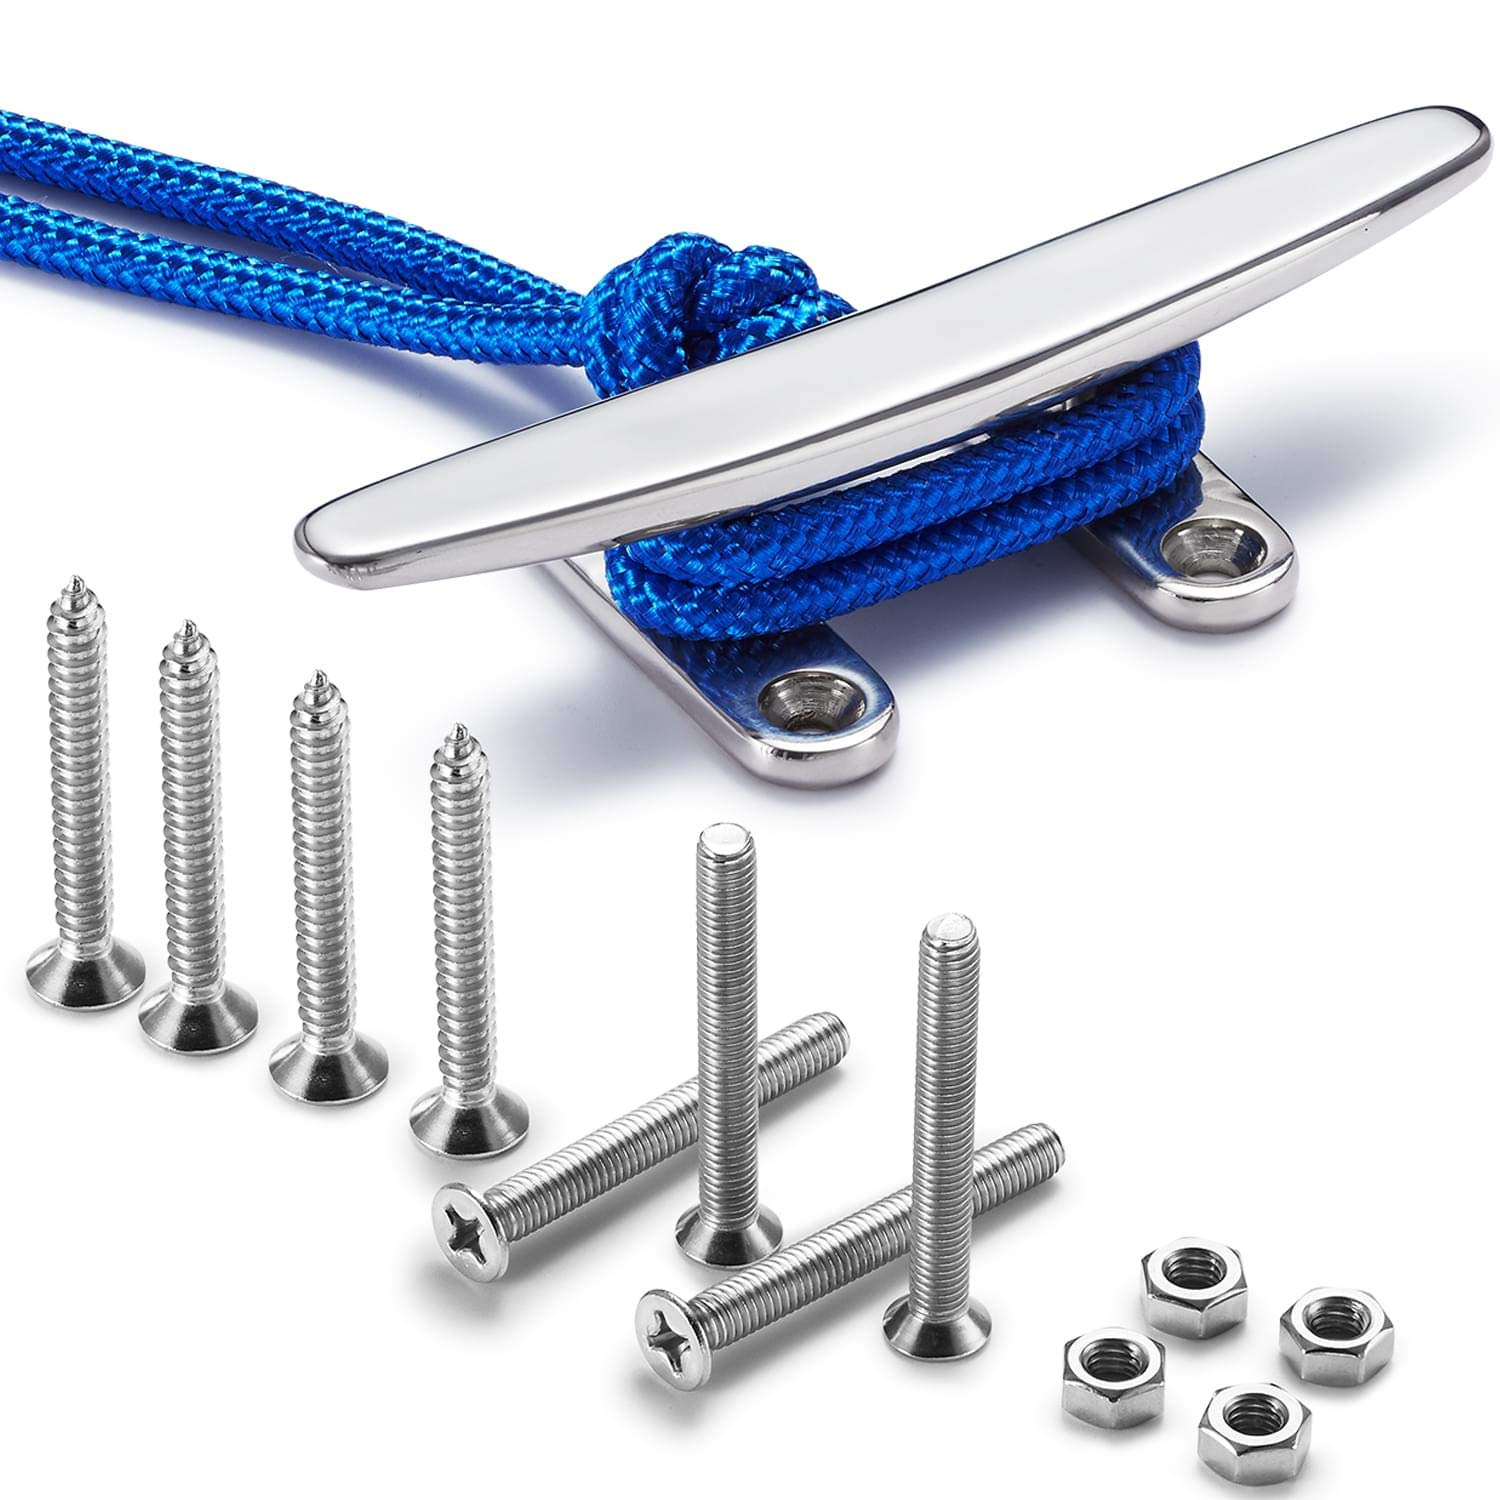 ZOMCHAIN 6'' Open Base Boat Cleat, 6 inch Dock Cleat All 316 Stainless Steel Boat Mooring Accessories, Free Installation Accessories Bolts, Nuts and Screws, 1PCS